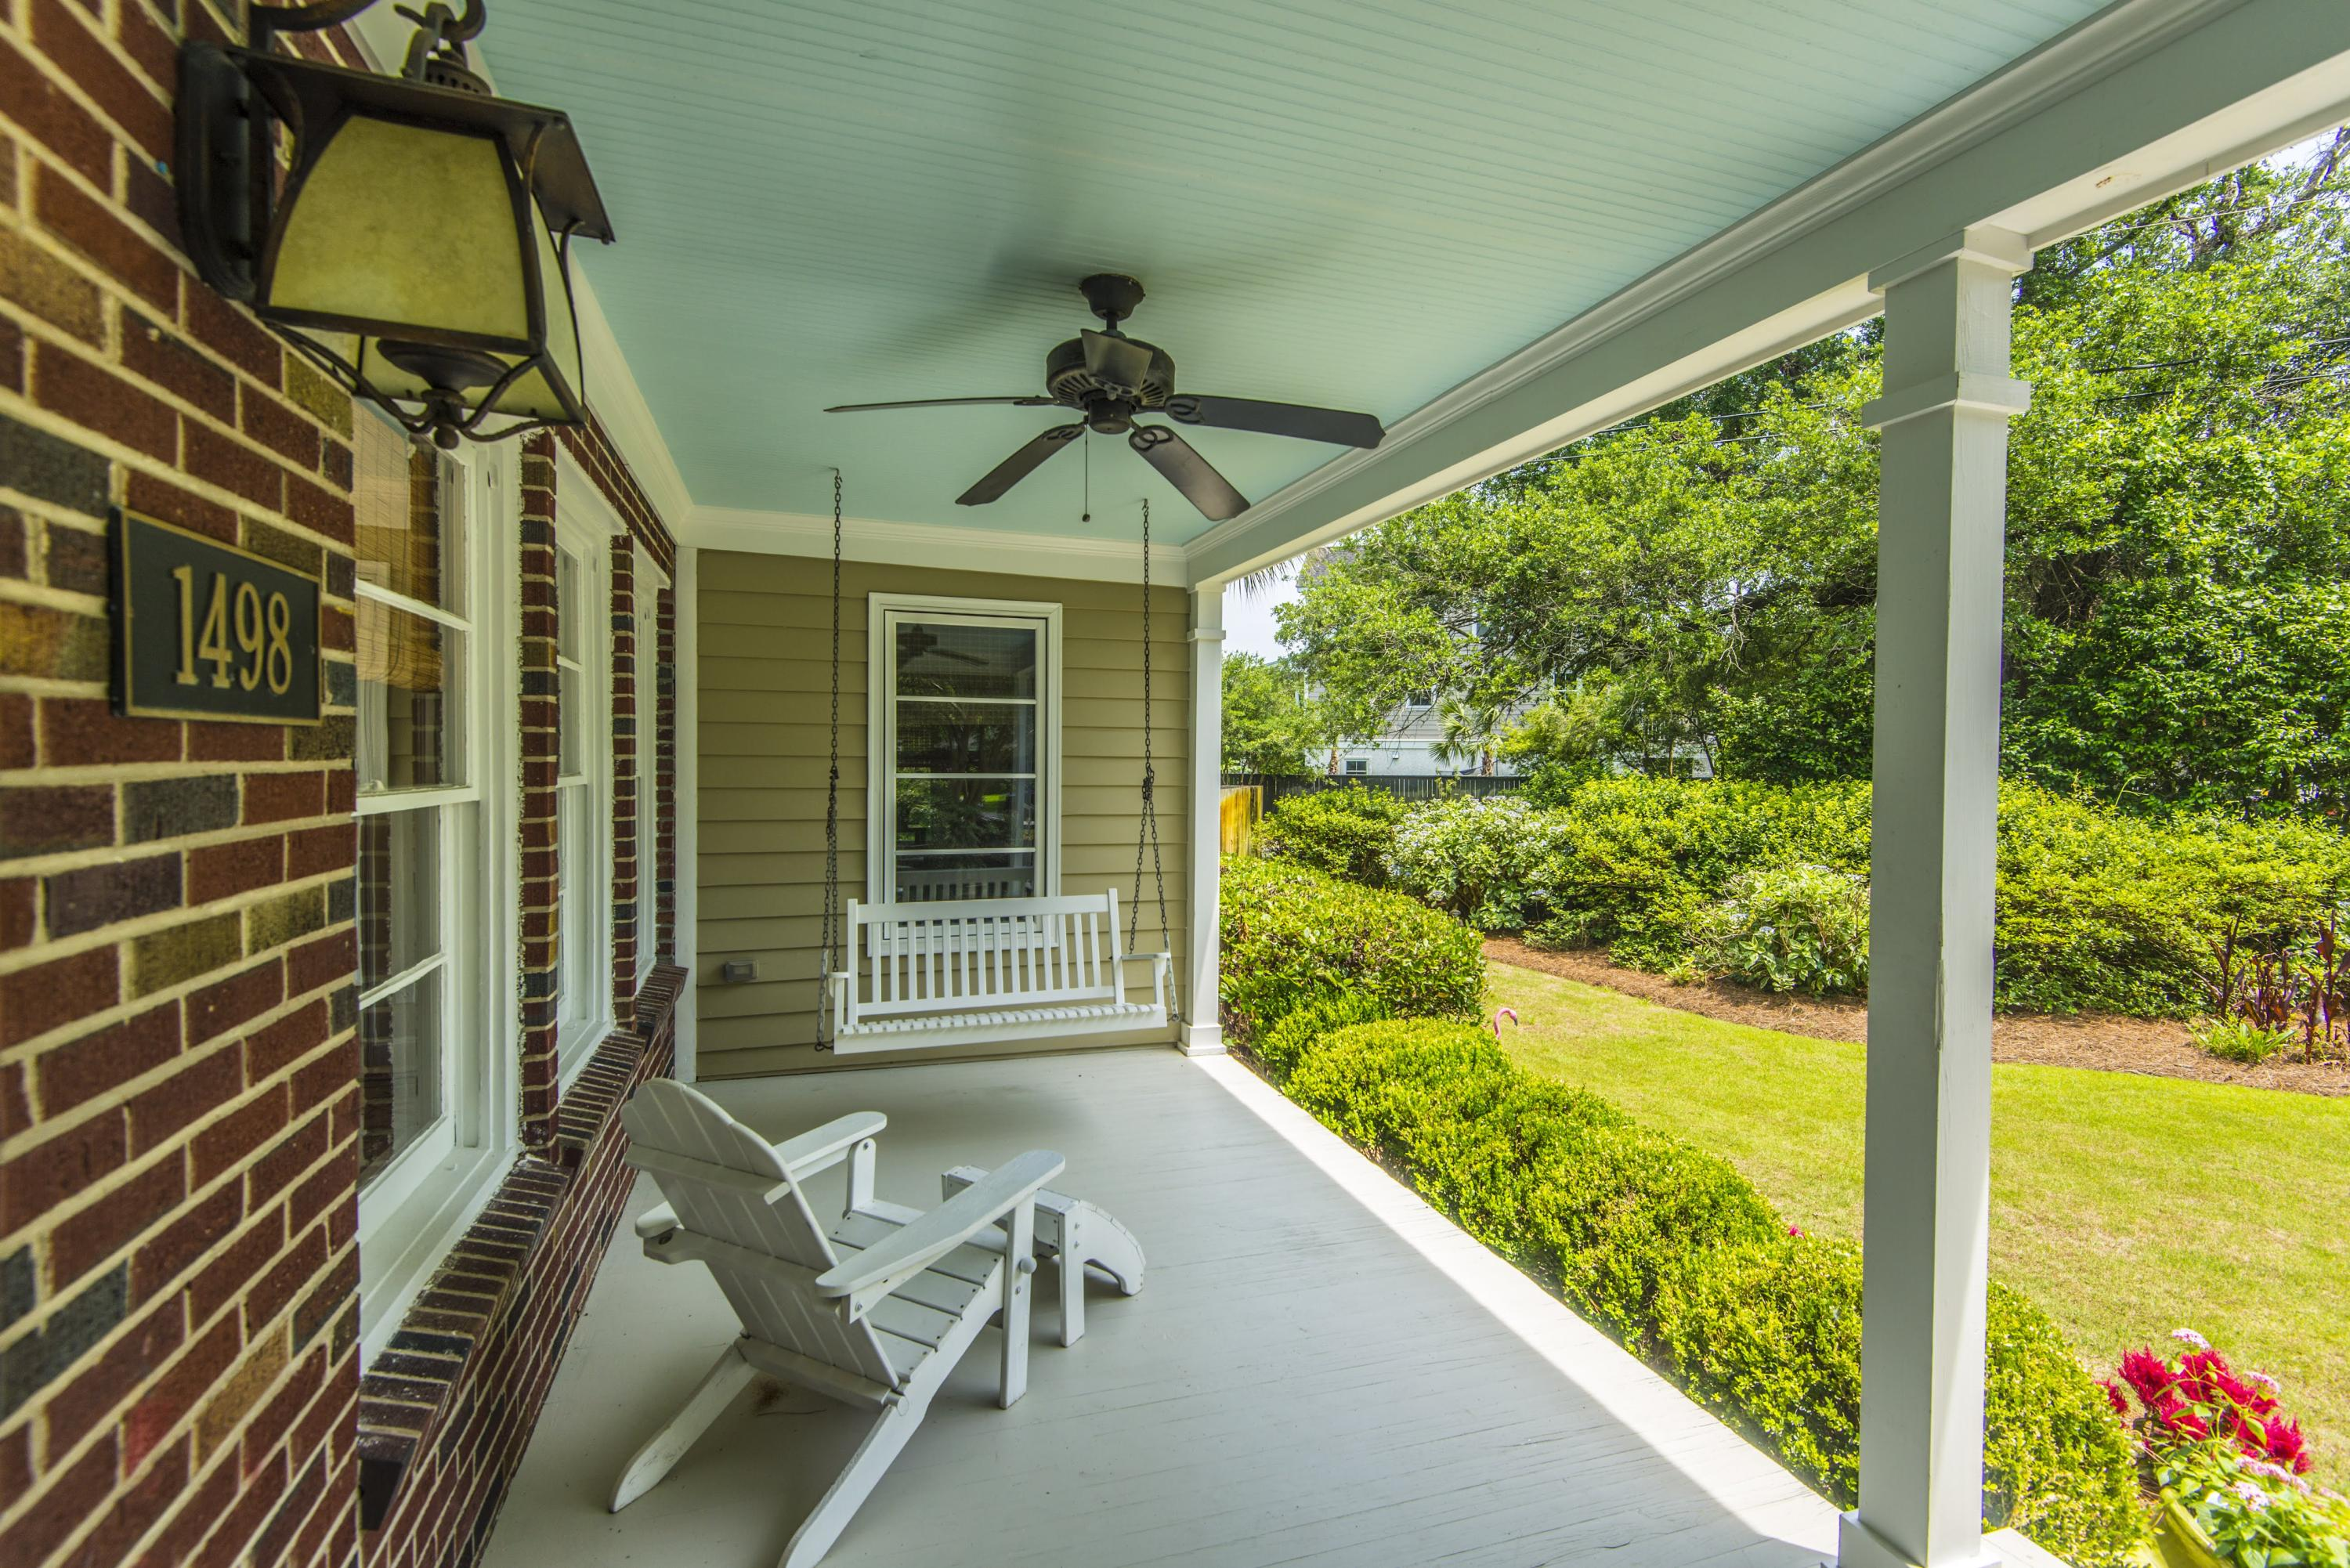 Old Mt Pleasant Homes For Sale - 1498 Pocahontas, Mount Pleasant, SC - 7